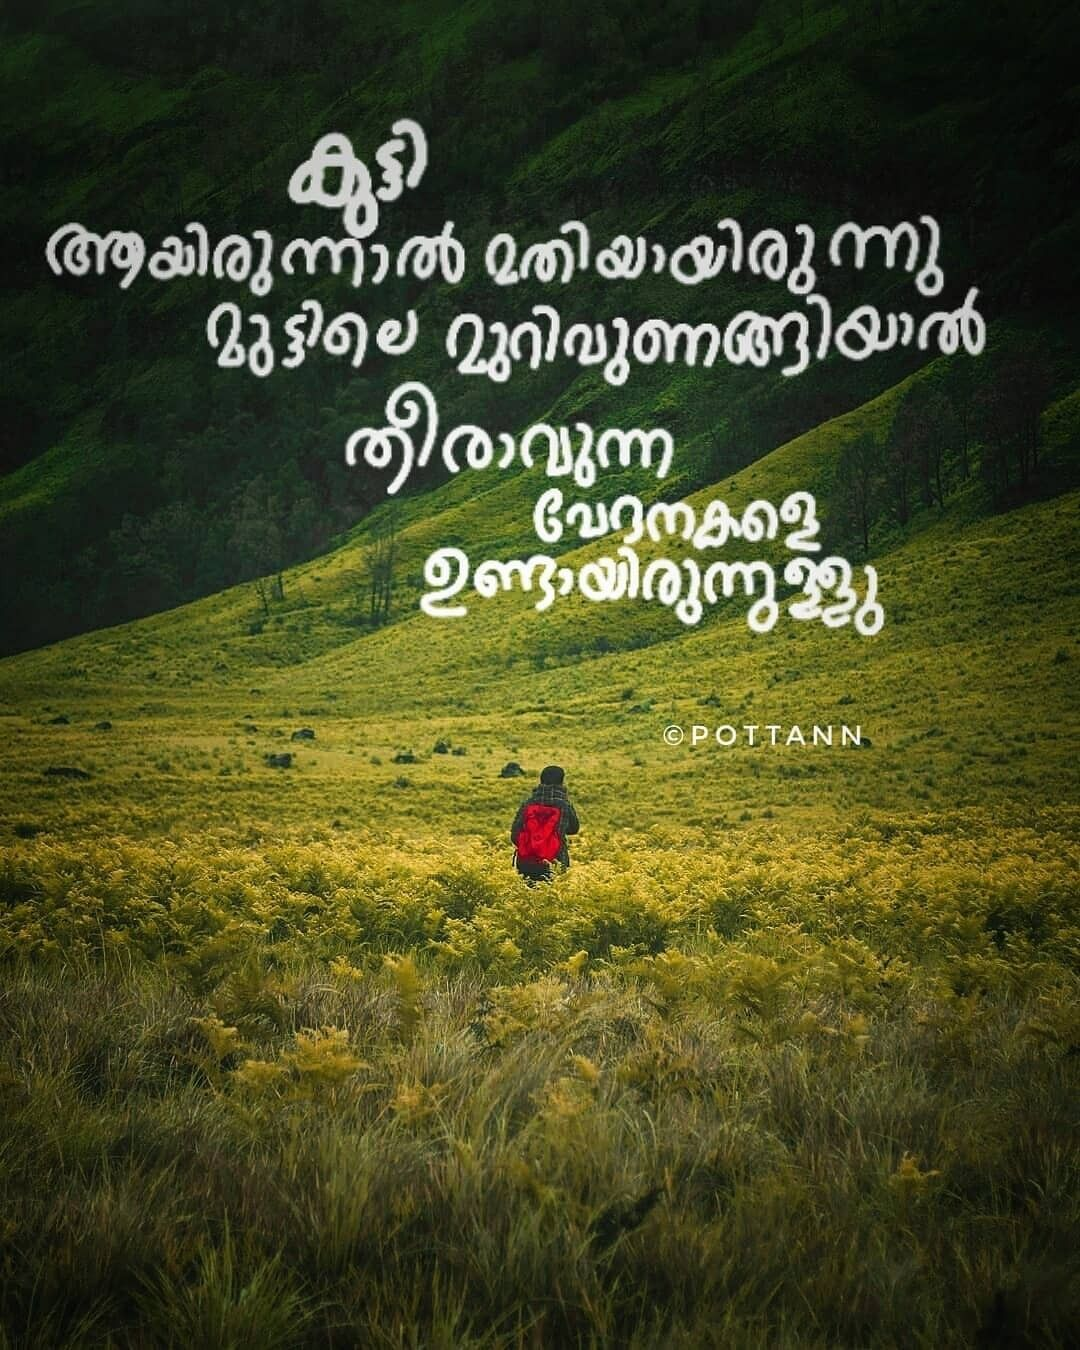 Malayalam Quotes Malayalam Quotes Malayalam Quotes Quotes Best